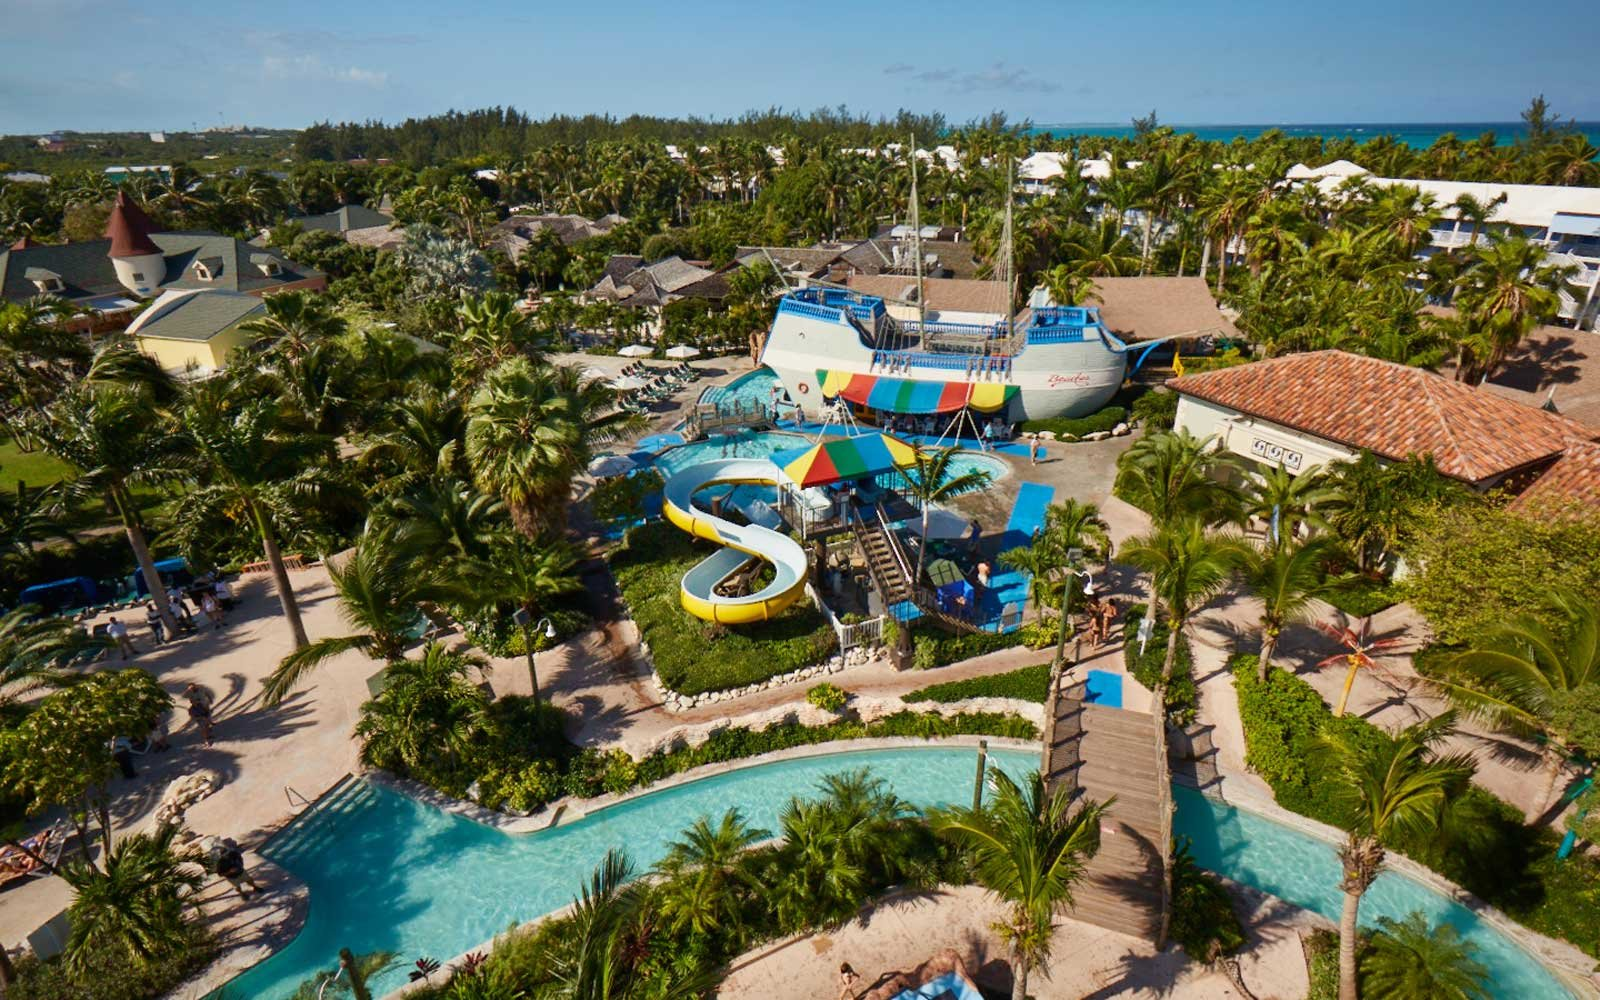 View of the Beaches Turks & Caicos Resort